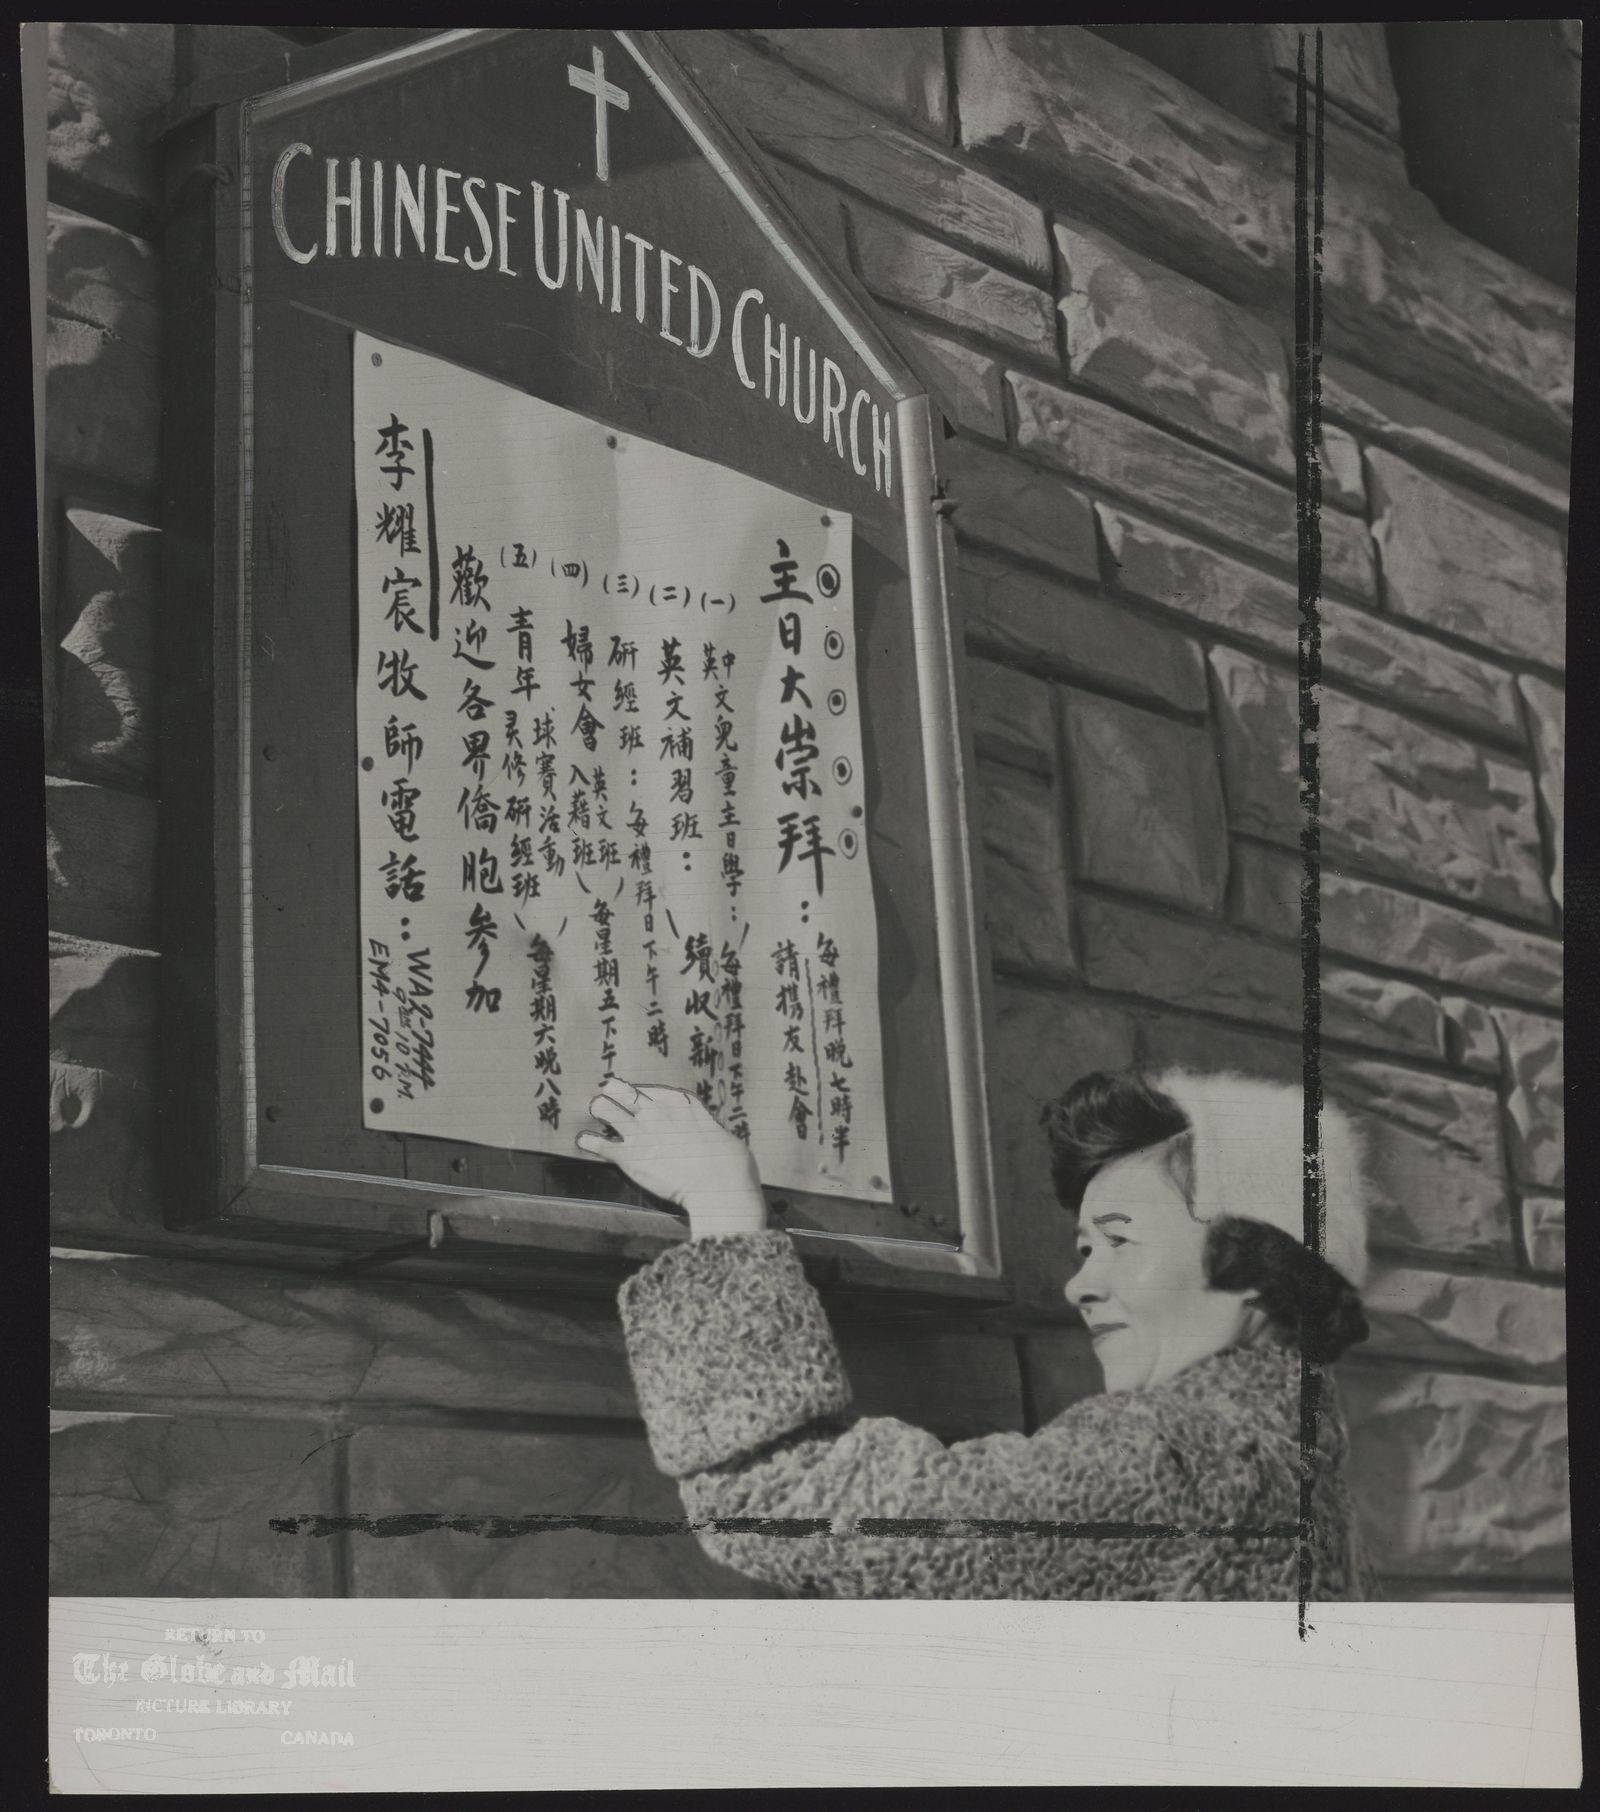 CHINESE IN TORONTO A major building project for Toronto's Chinese in planned just outside Chinatown. Sign is placed on bulletin board outside the Chinese United Church on Chestnut St by Mrs Tong Wong.